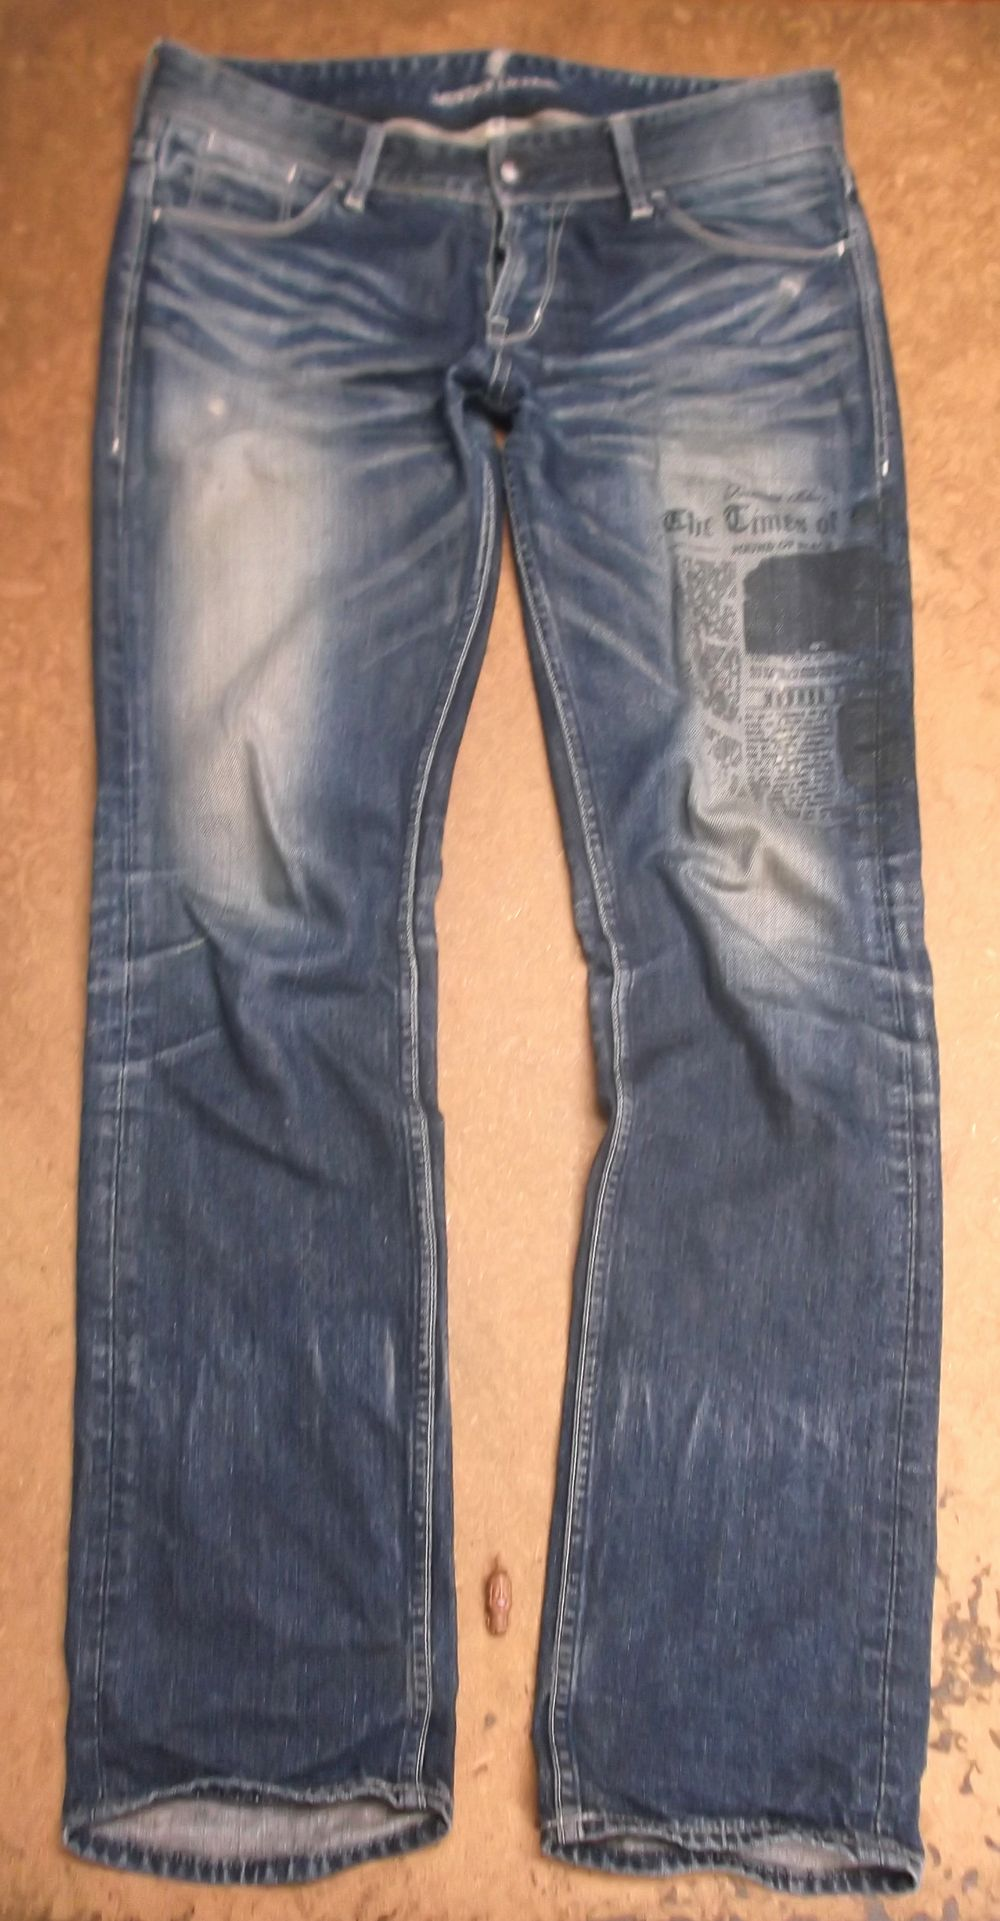 jeans1191-1